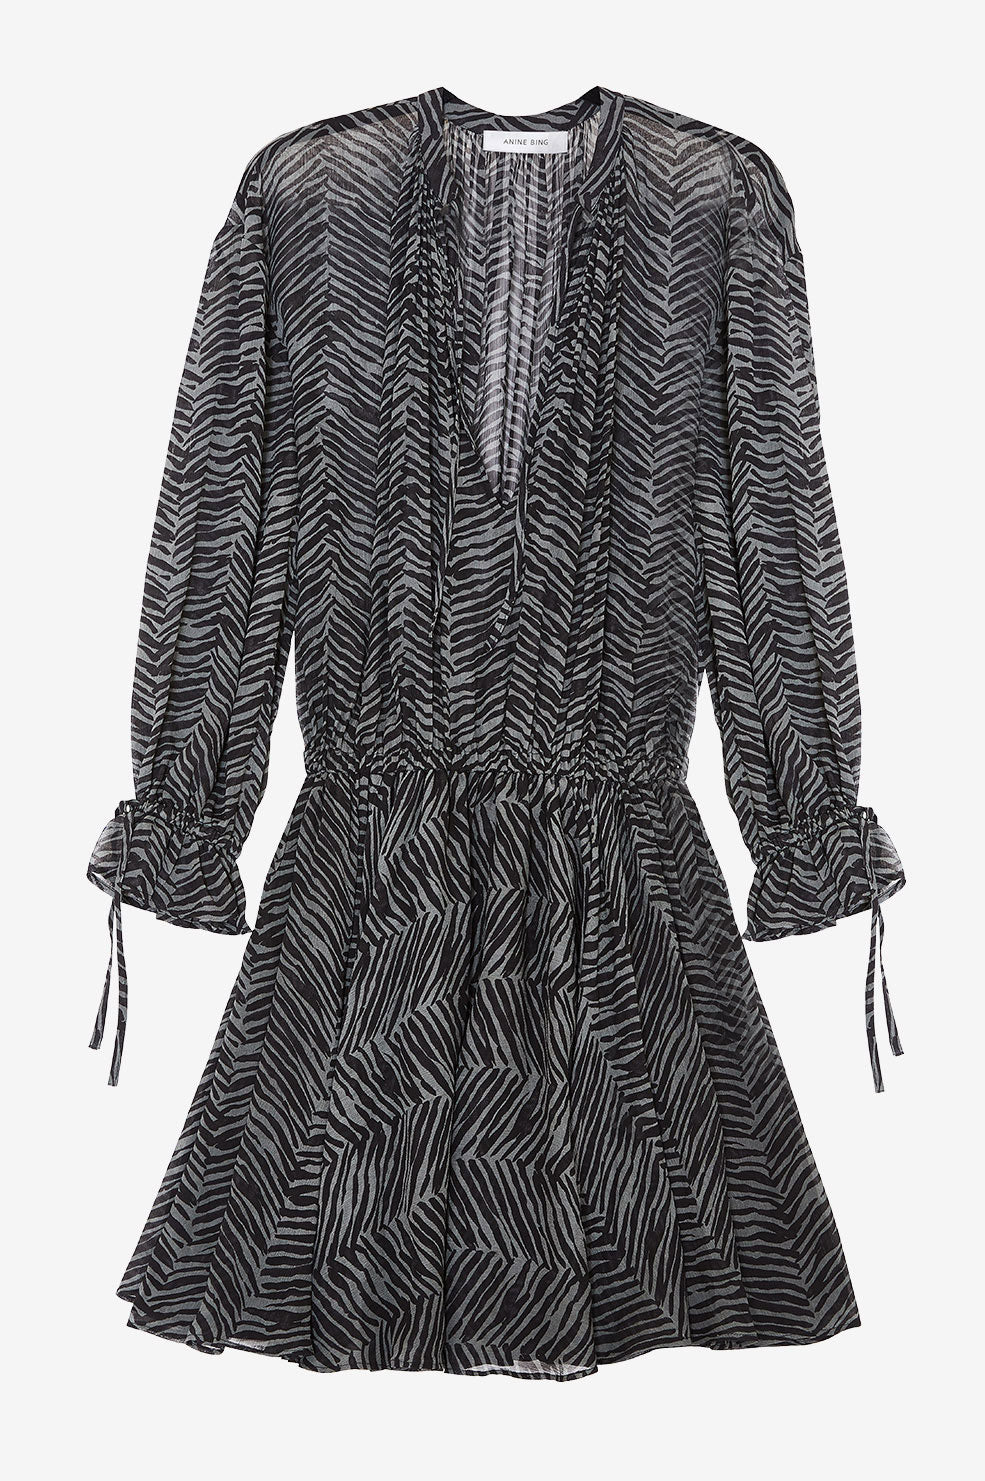 ANINE BING Elliana Dress - Willow Green Zebra